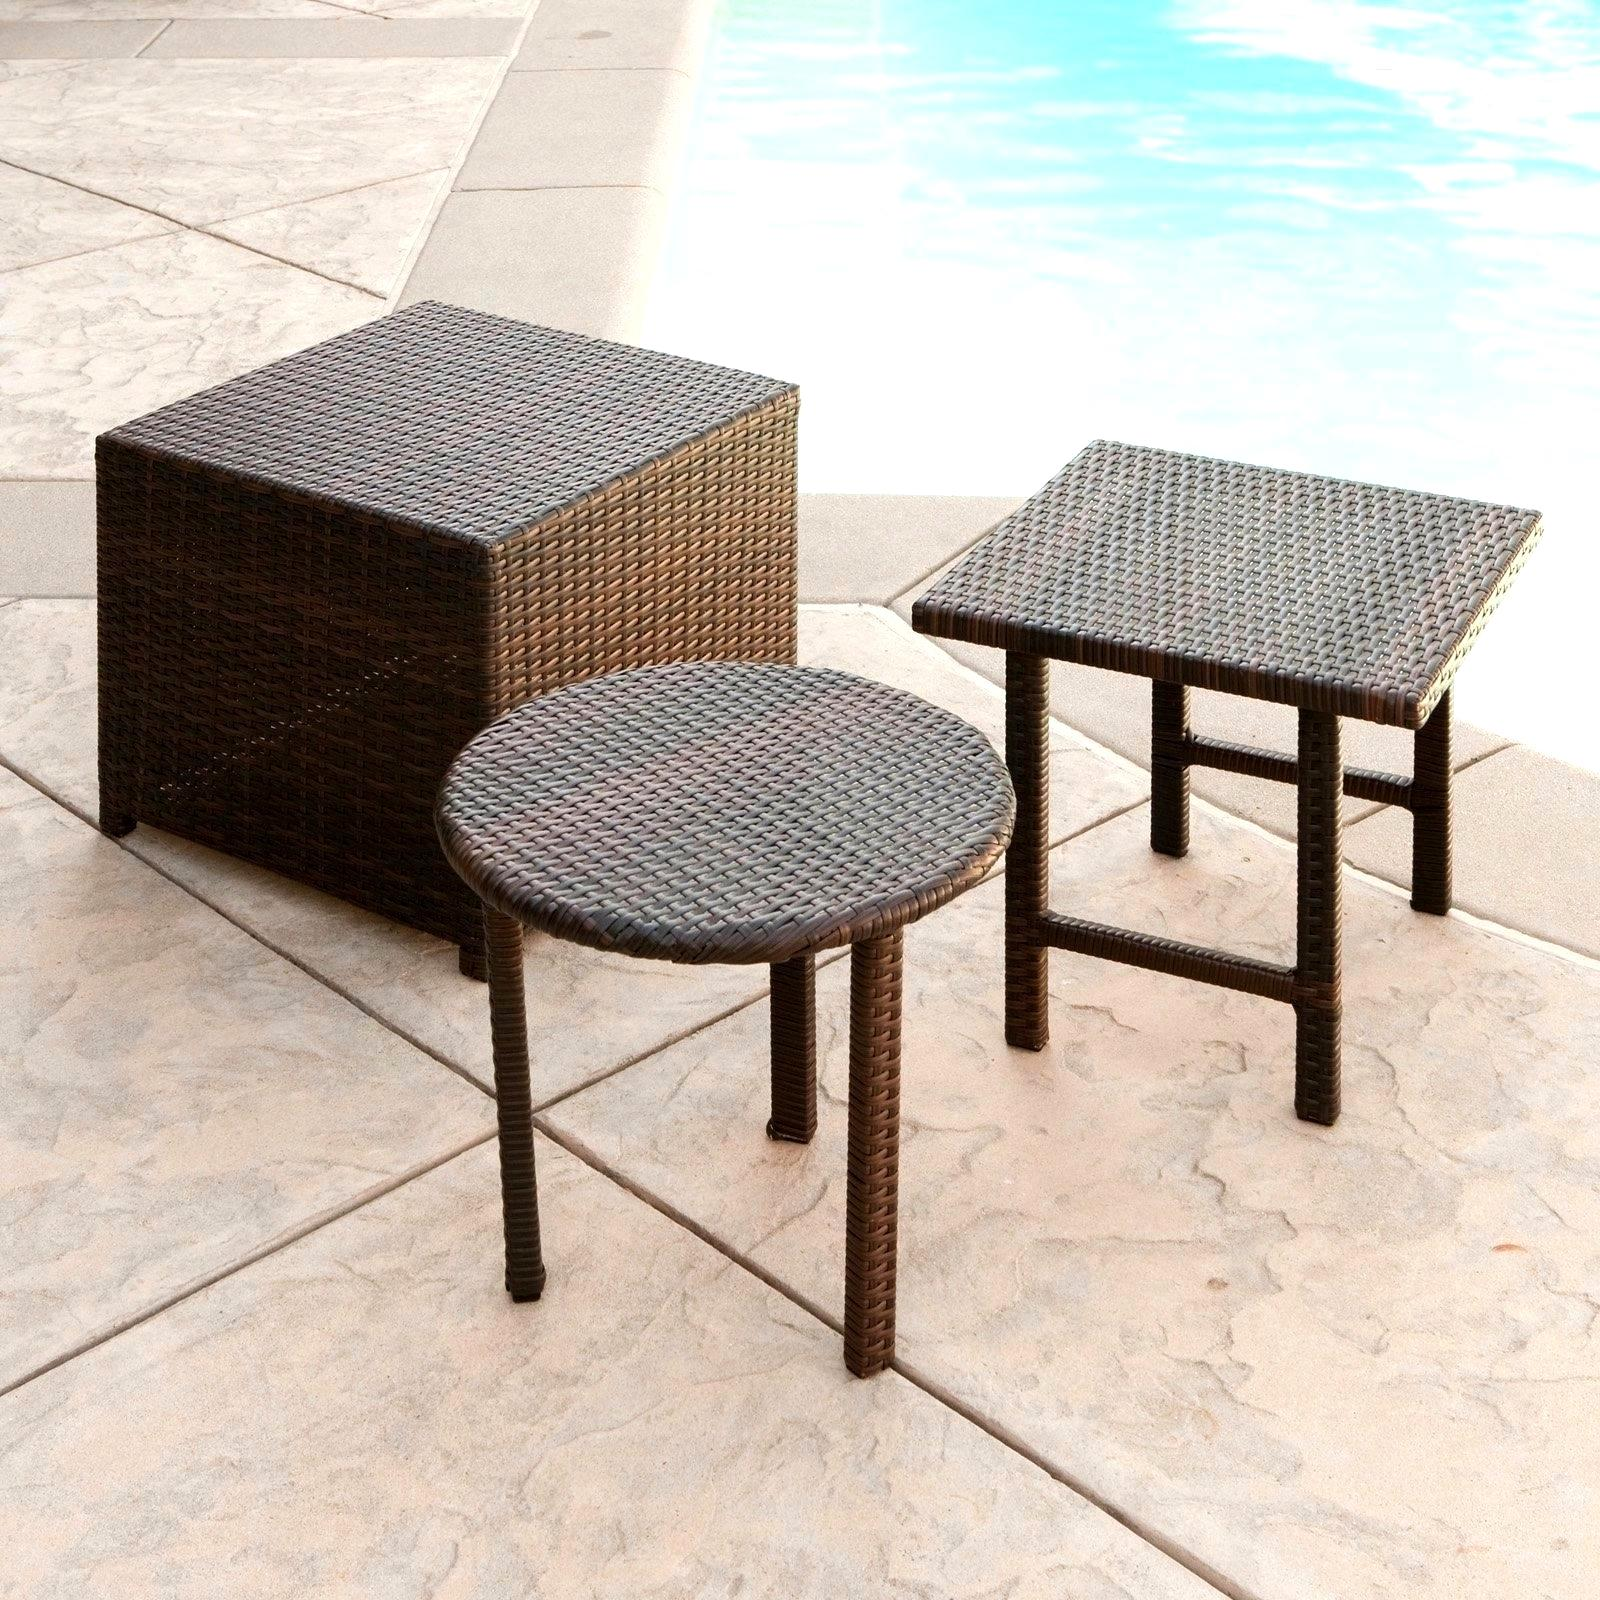 livingroom patio side table target furniture tables small black white plastic metal retro round mesh wrought iron outstanding accent plans wicker inspiring rattan garden homebase